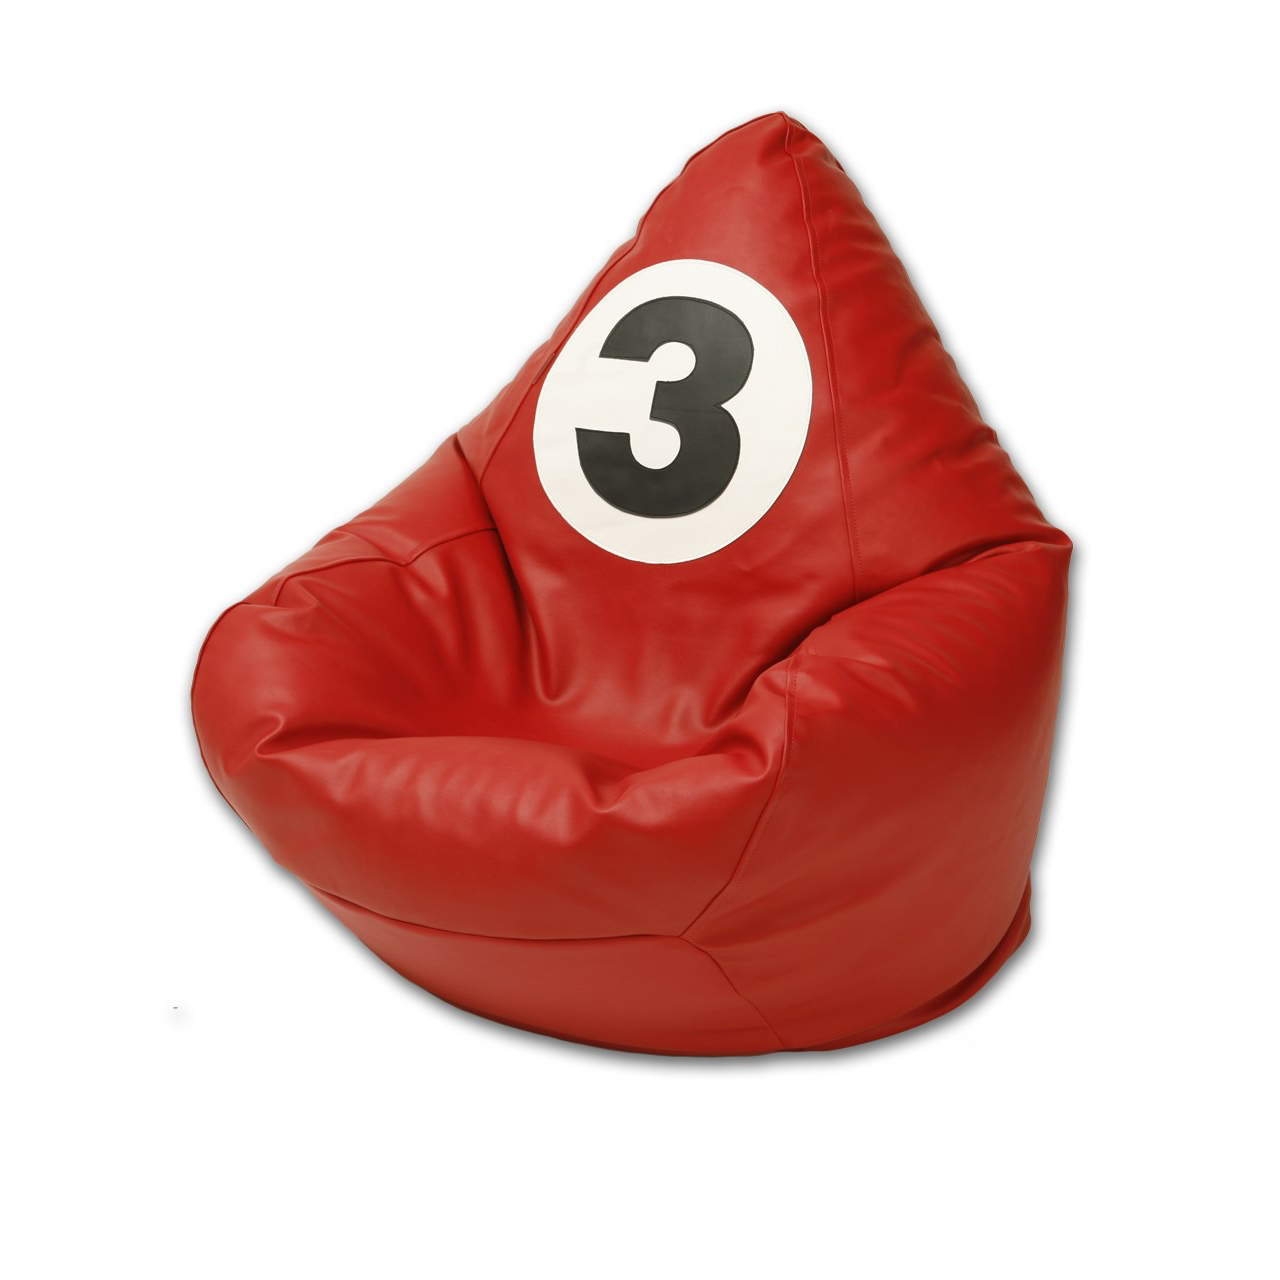 3-Ball Bean Bag